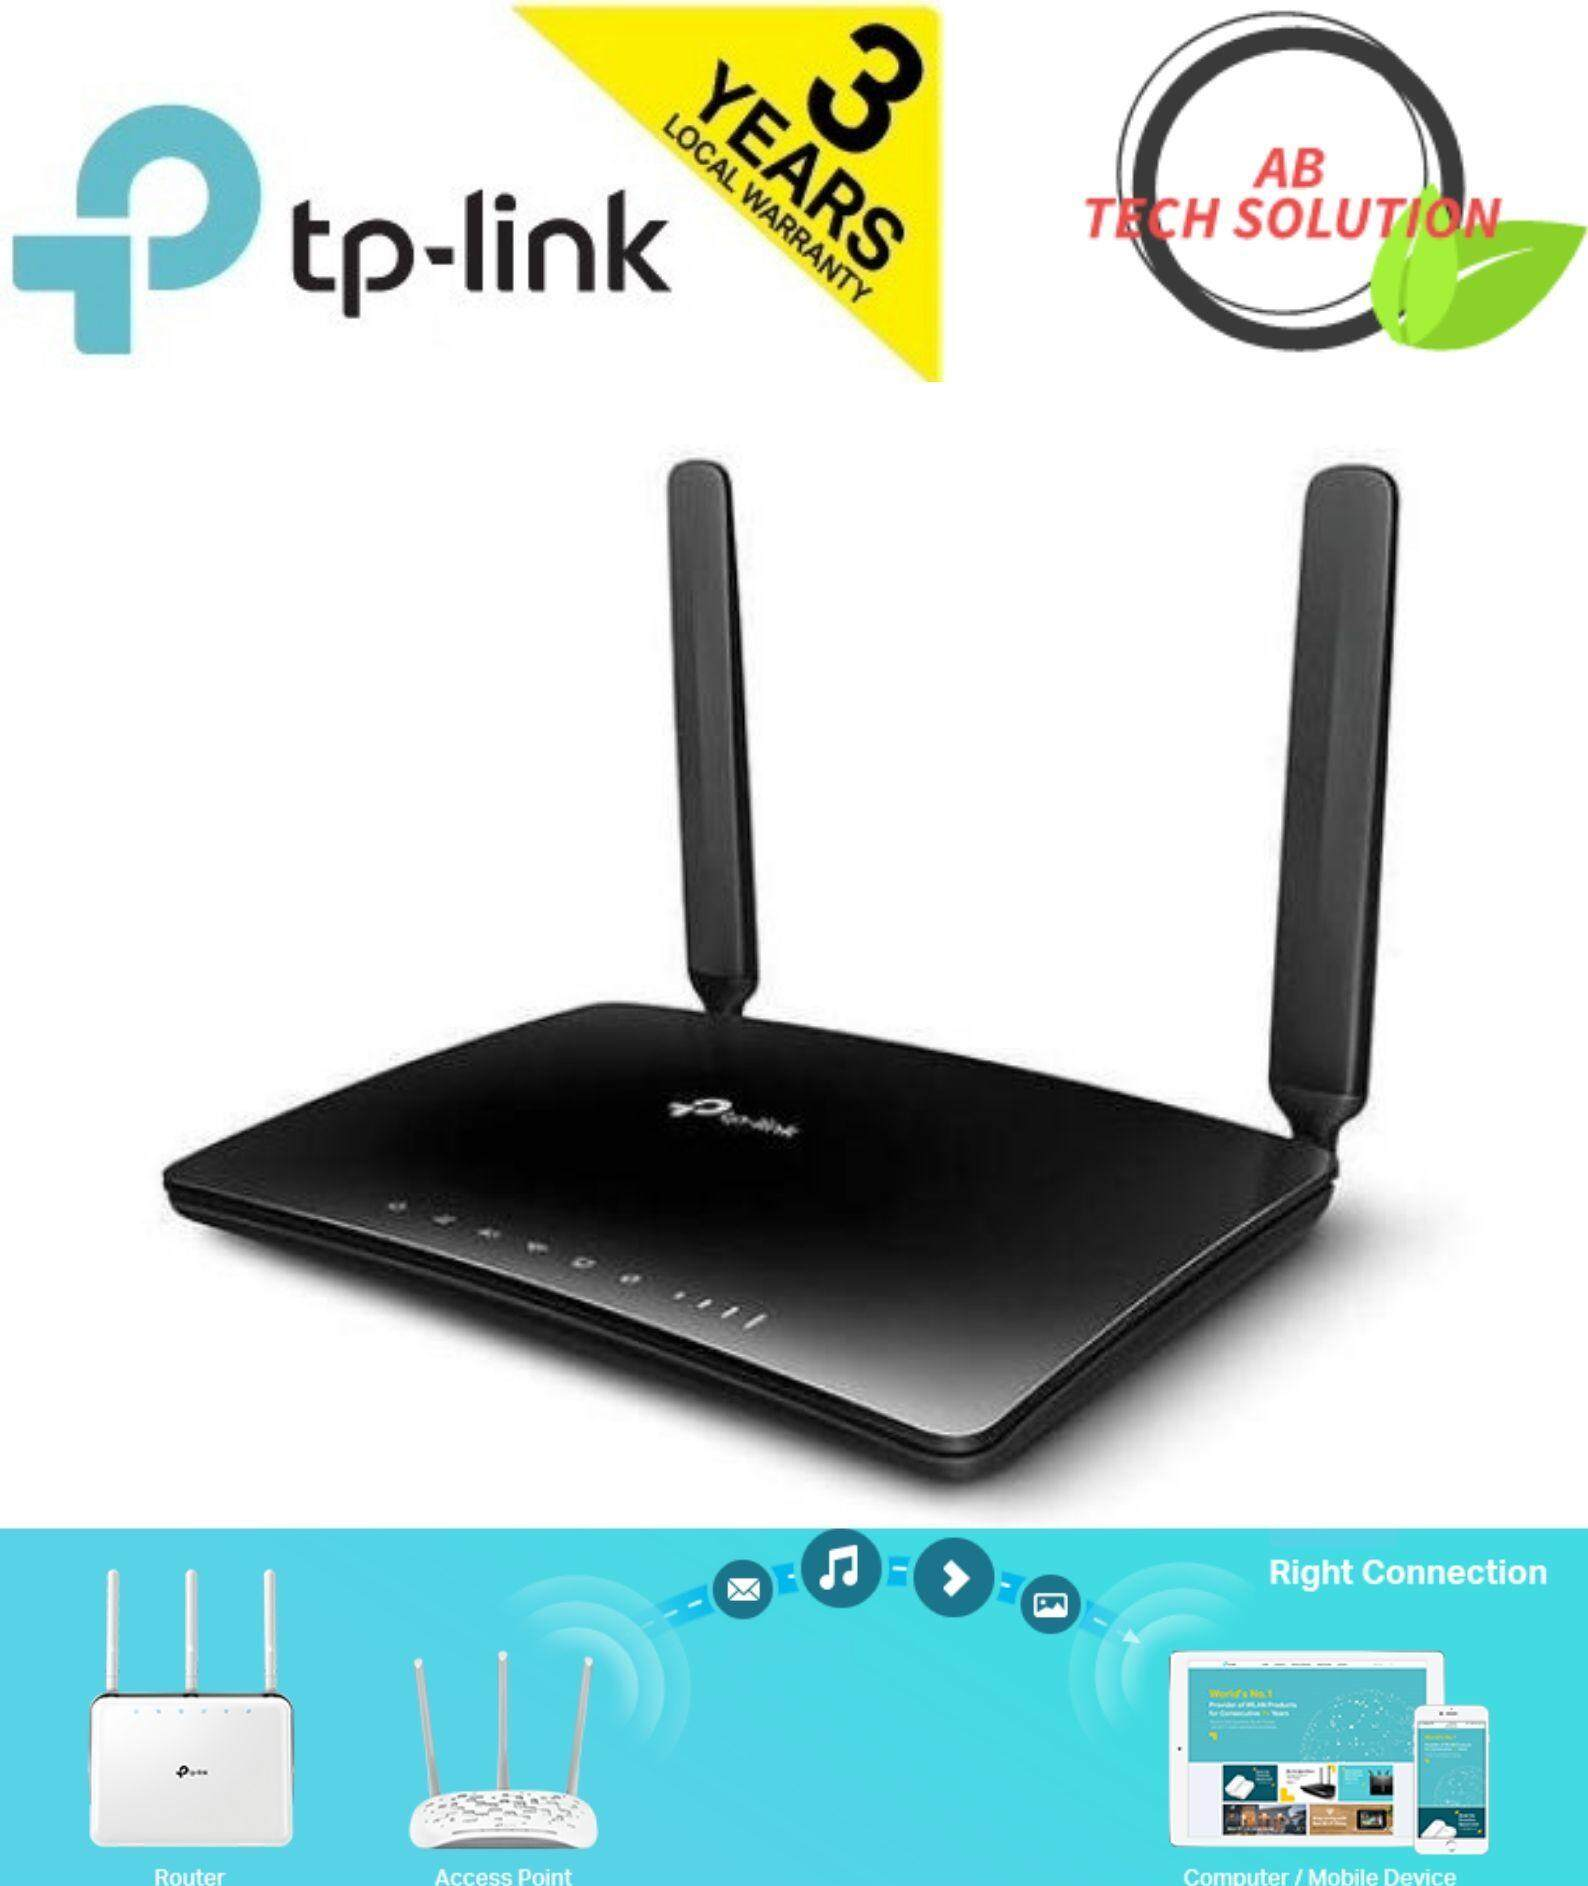 TP-LINK MR400 AC1200 Dual Band 4G LTE Wireless 2 4Ghz + 5Ghz WiFi Modem  Router For All Telco Direct SIM Card